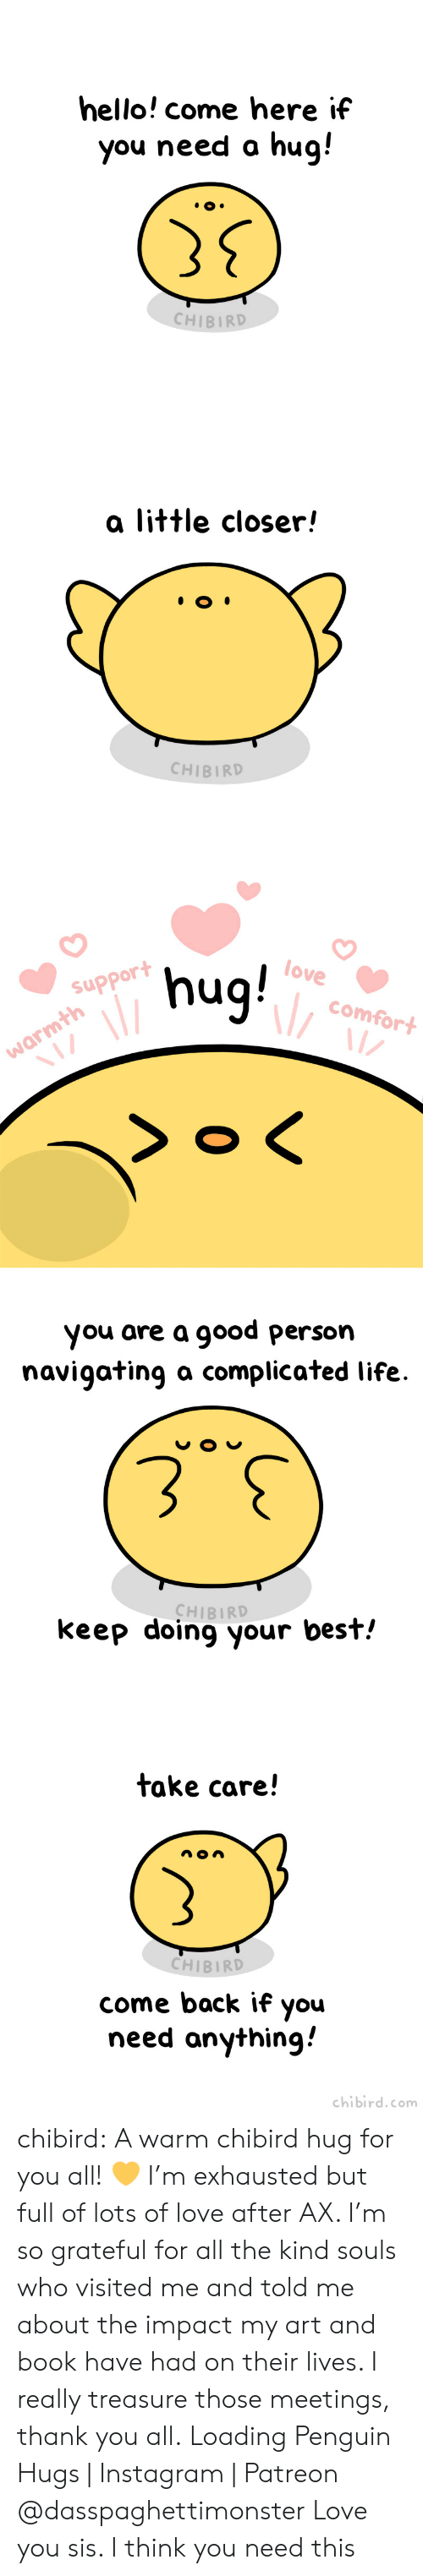 Meetings: hello! come here if  you need a hug!  CHIBIRD   a little closer!  CHIBIRD   6nu  >o <  love  support  comfort  warmth  Z  0   you are a good person  navigating a complicated life  CHIBIRD  keep doing your best!   take care!  CHIBIRD  come back if you  need anything  chibird.com chibird:  A warm chibird hug for you all! 💛 I'm exhausted but full of lots of love after AX. I'm so grateful for all the kind souls who visited me and told me about the impact my art and book have had on their lives. I really treasure those meetings, thank you all.   Loading Penguin Hugs | Instagram | Patreon    @dasspaghettimonster Love you sis. I think you need this